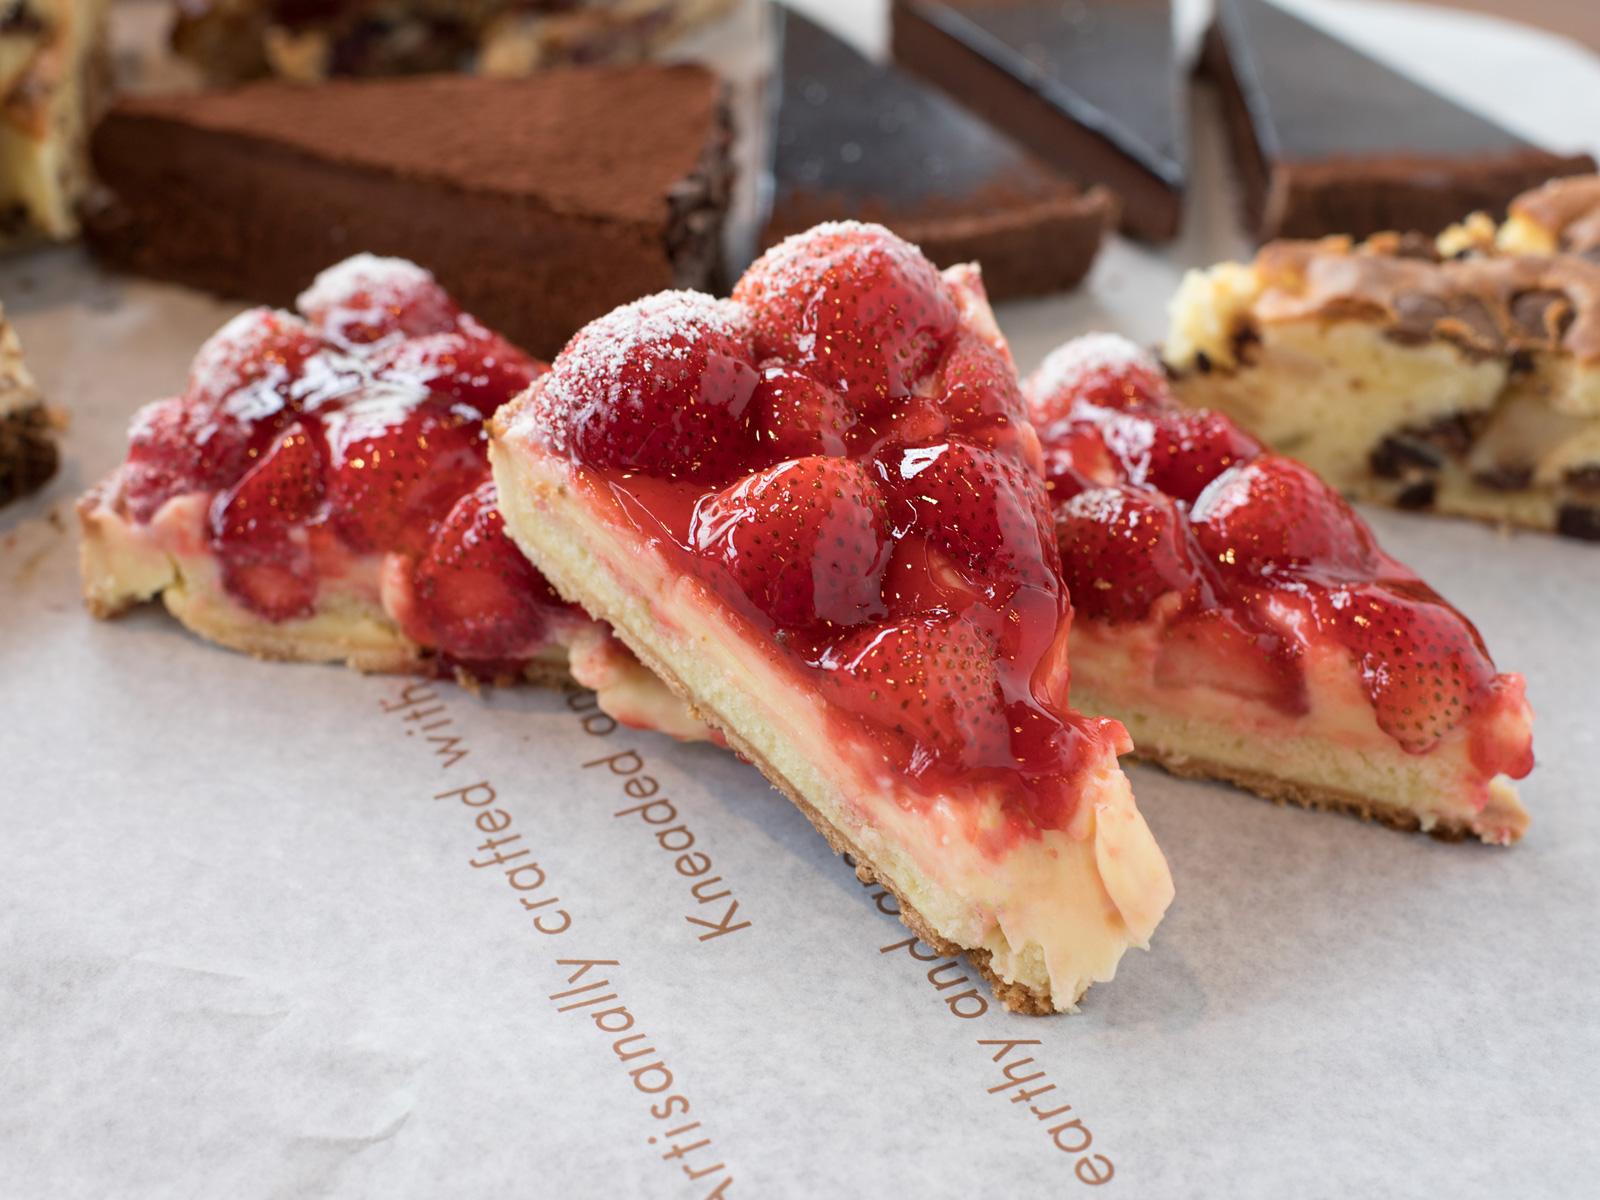 Princi Strawberry Dessert